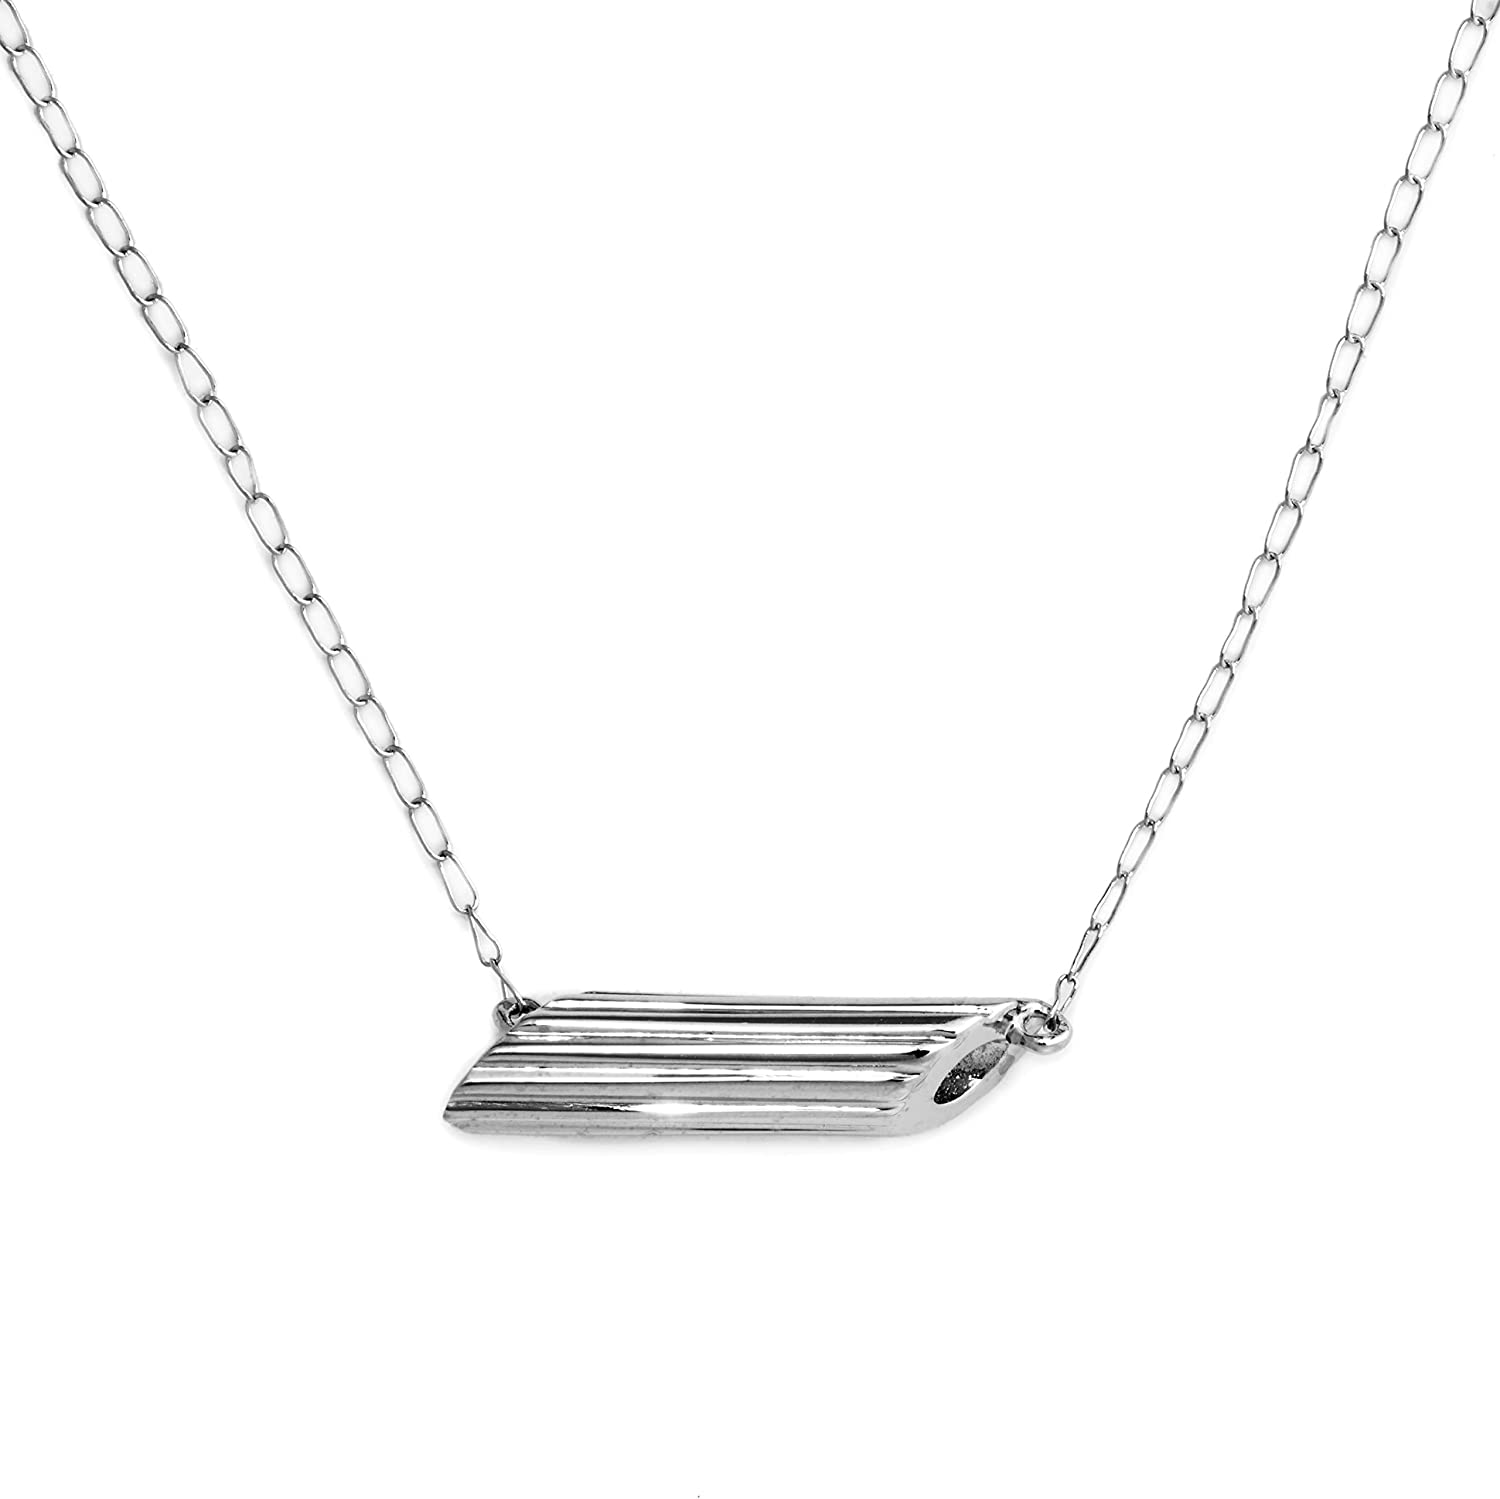 Delicacies Mini Food Jewelry for Food Lovers, Chefs, Cooks and Epicureans, Al Dente Collection